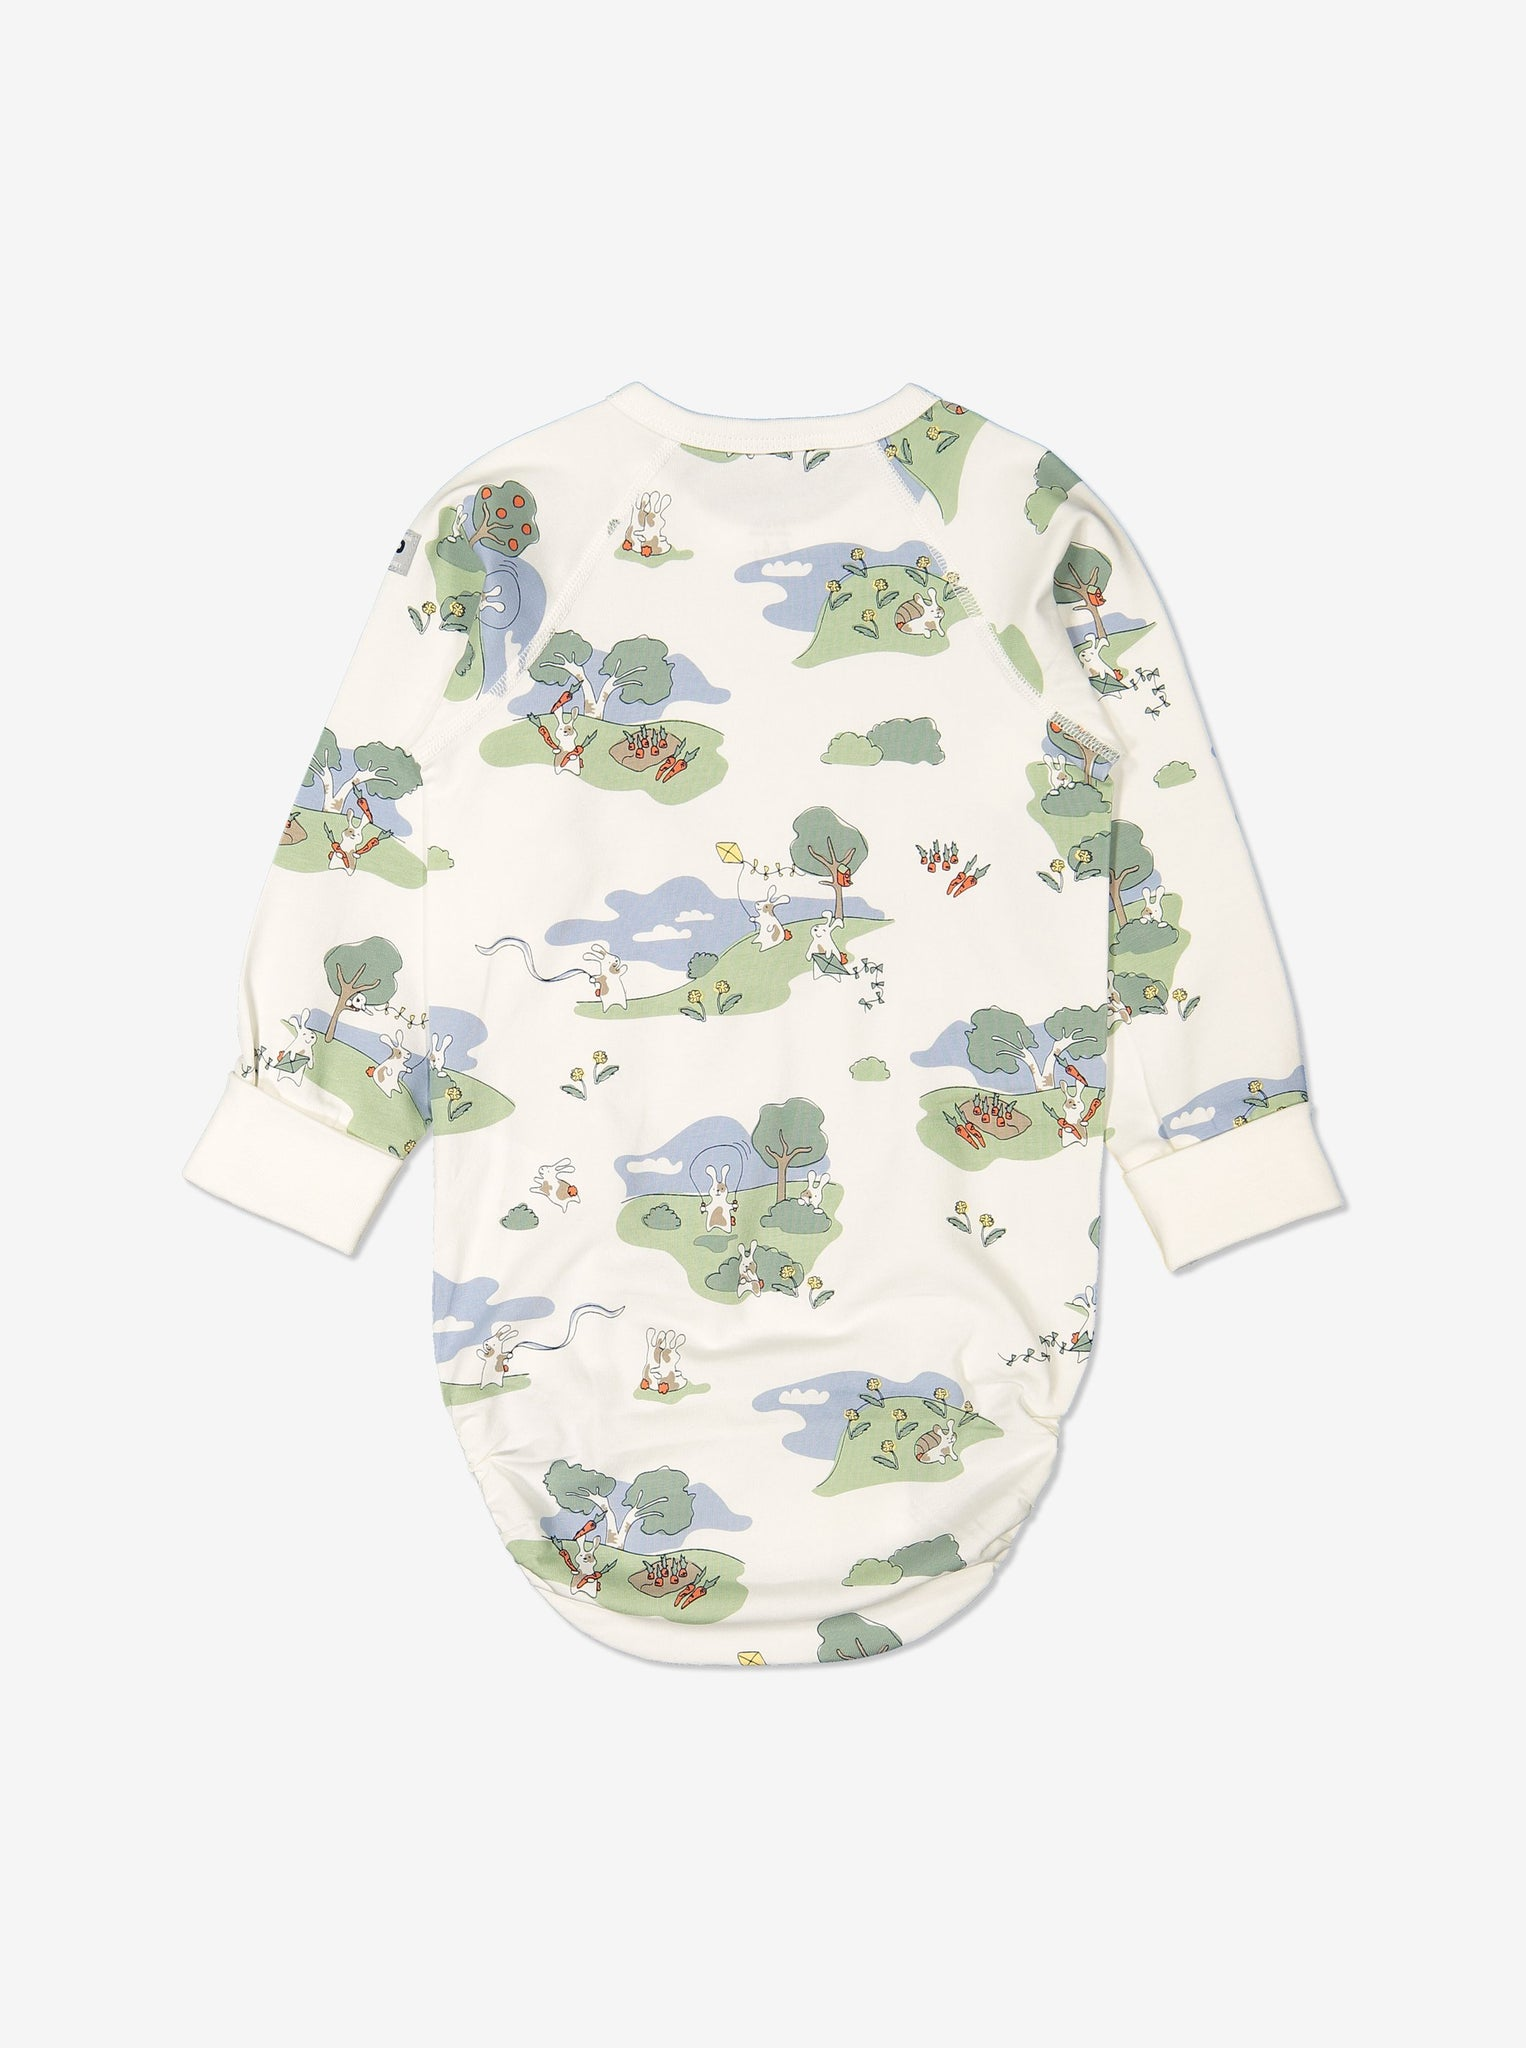 Back view of bunny print babygrow for babies with long sleeves, made from GOTS organic cotton fabric